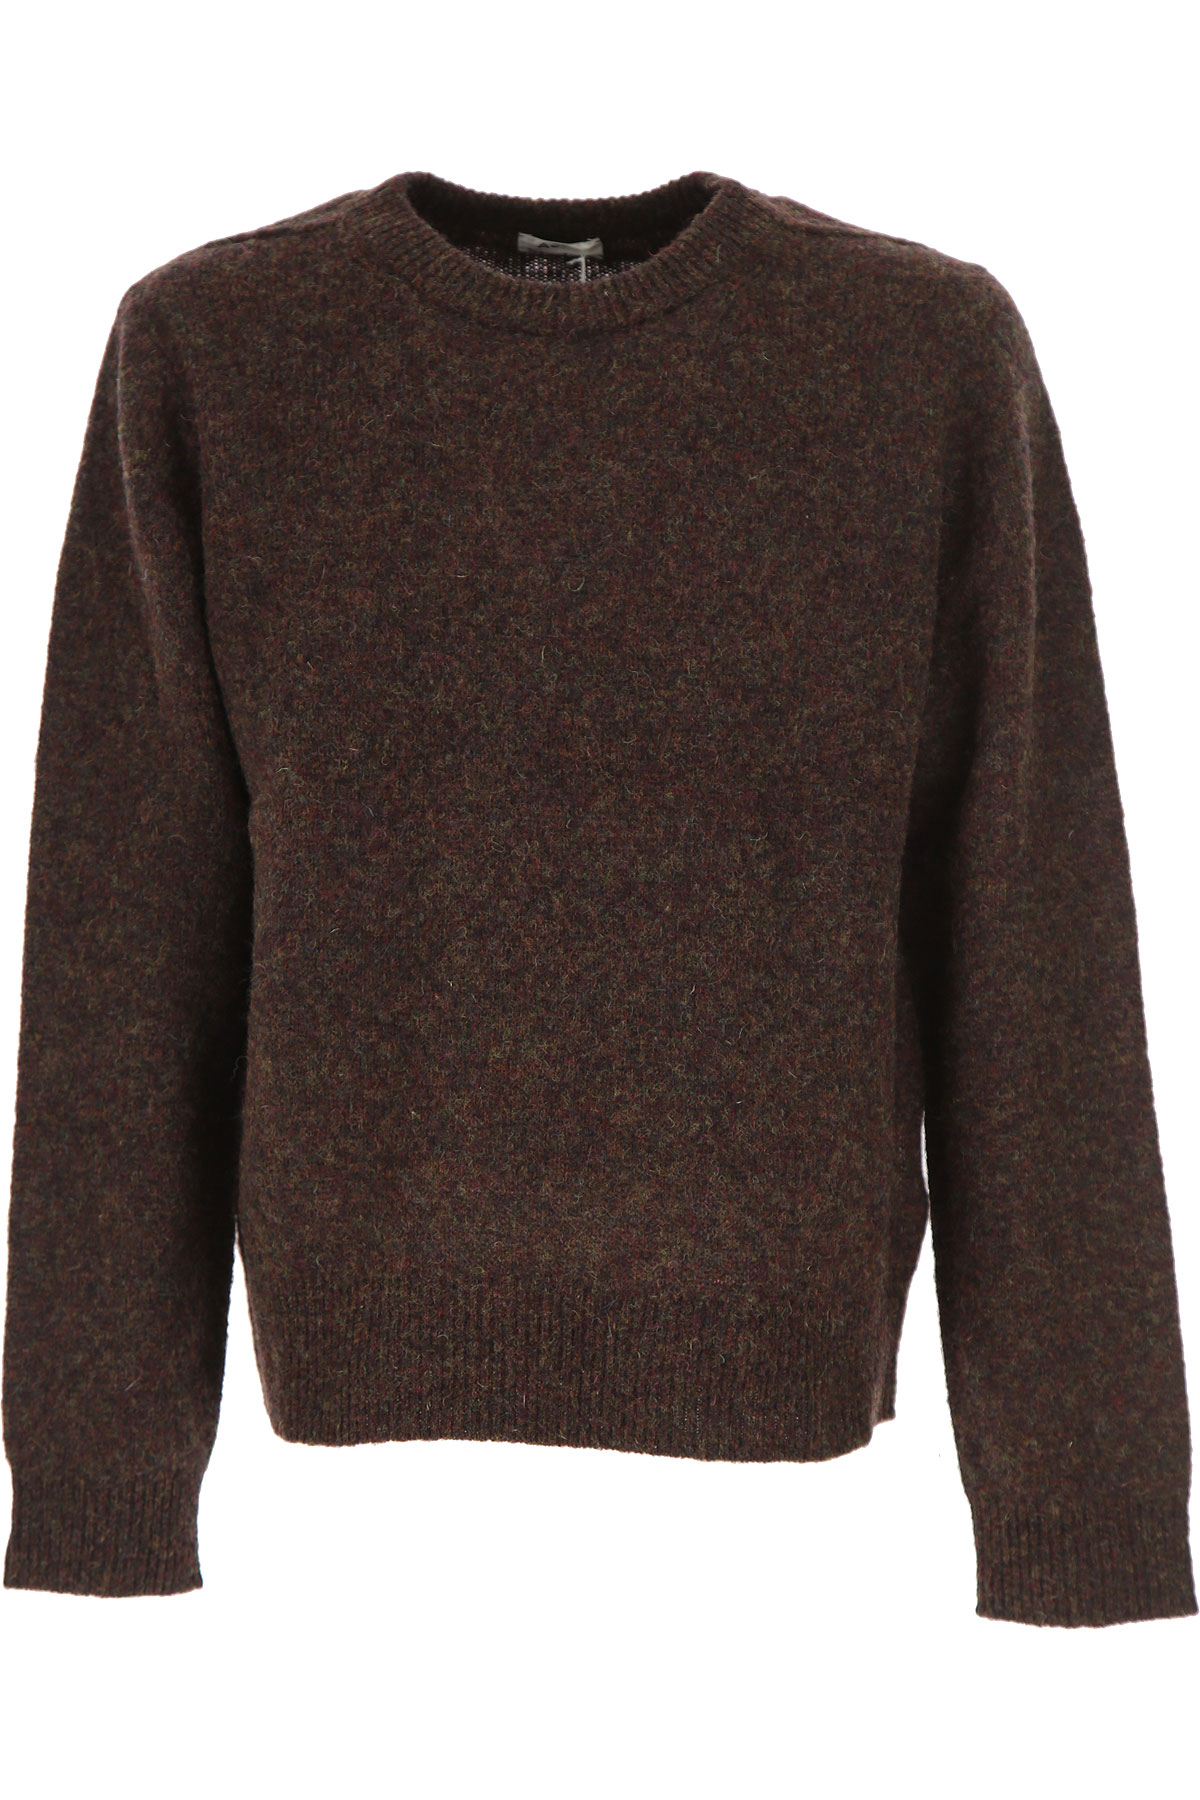 Image of Acne Studios Sweater for Men Jumper, Brown, Wool, 2017, M S XL